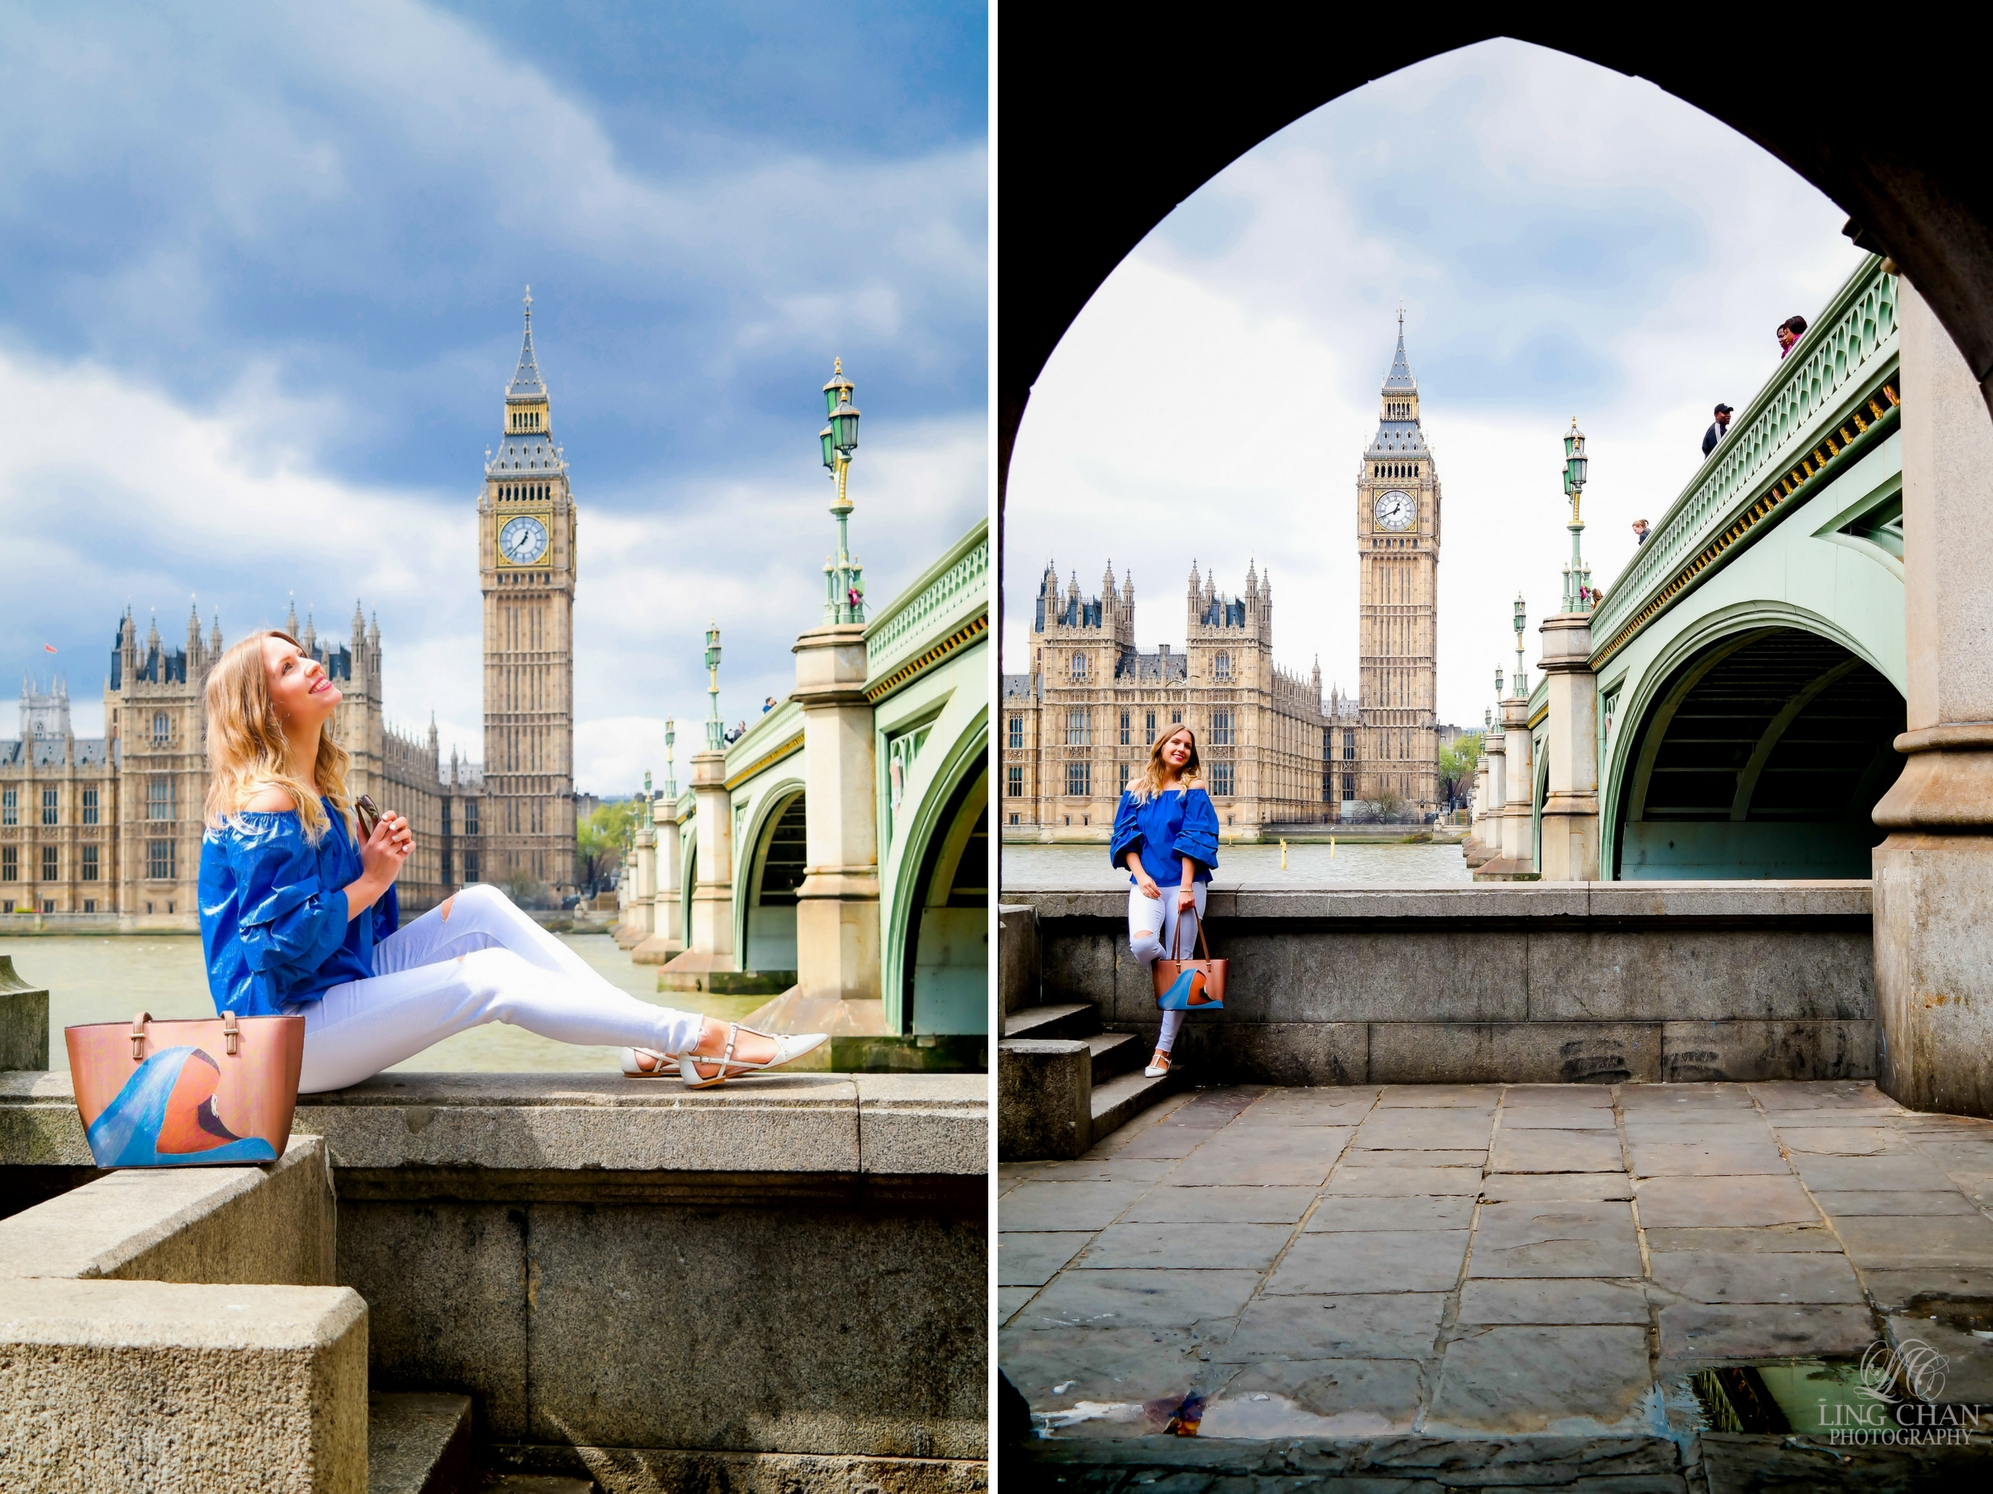 Best photo opportunities near Westminster Bridge, London